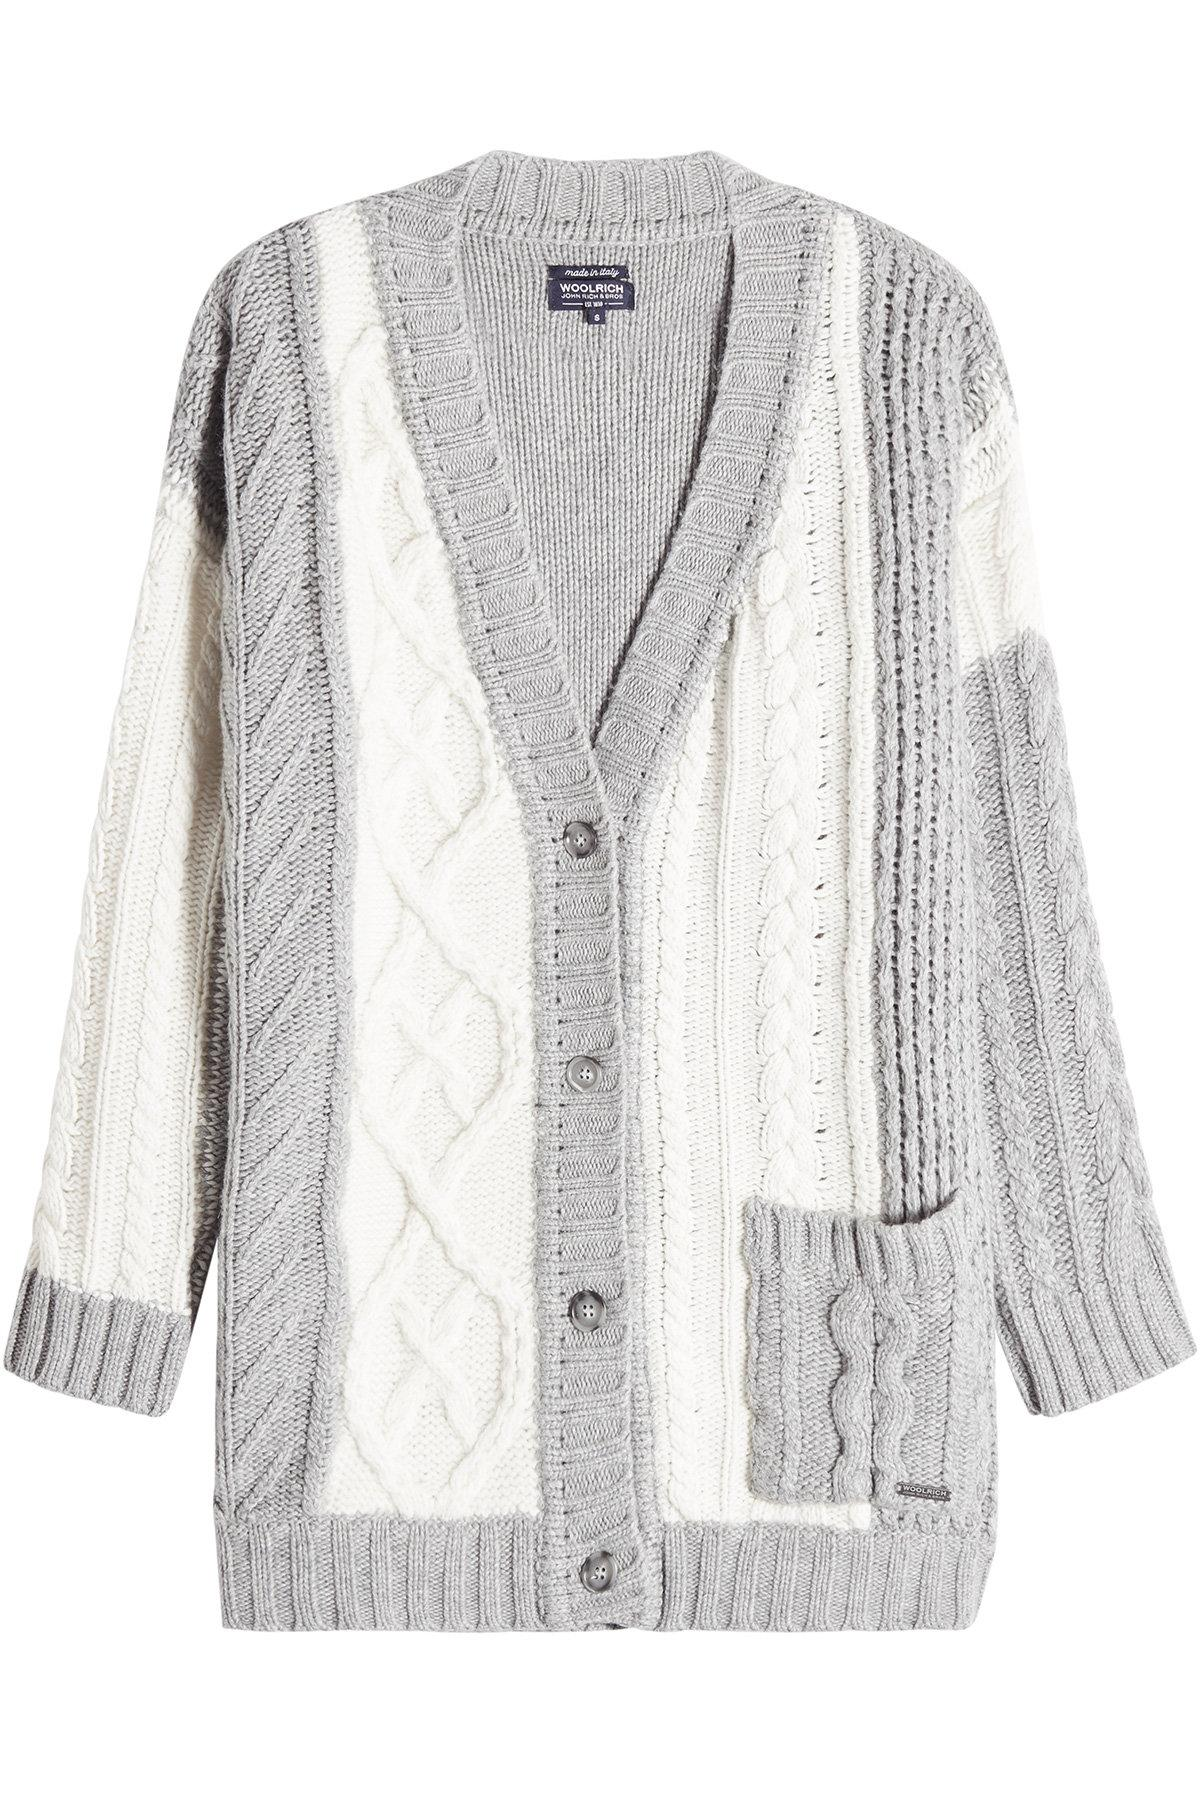 Woolrich Cardigan With Wool, Cashmere And Angora In Multicolored